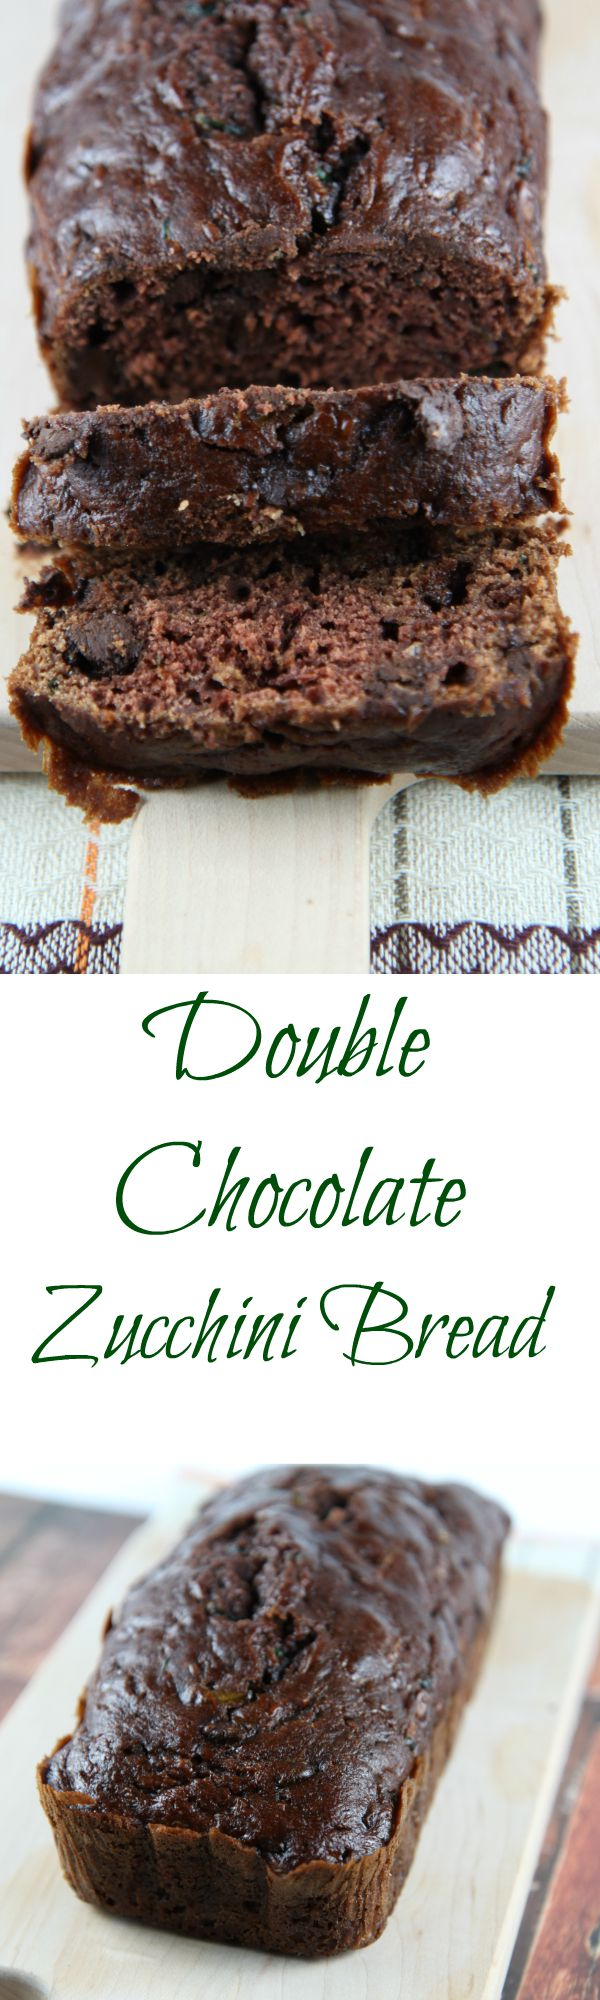 Double Chocolate Zucchini Bread with Chocolate Chips